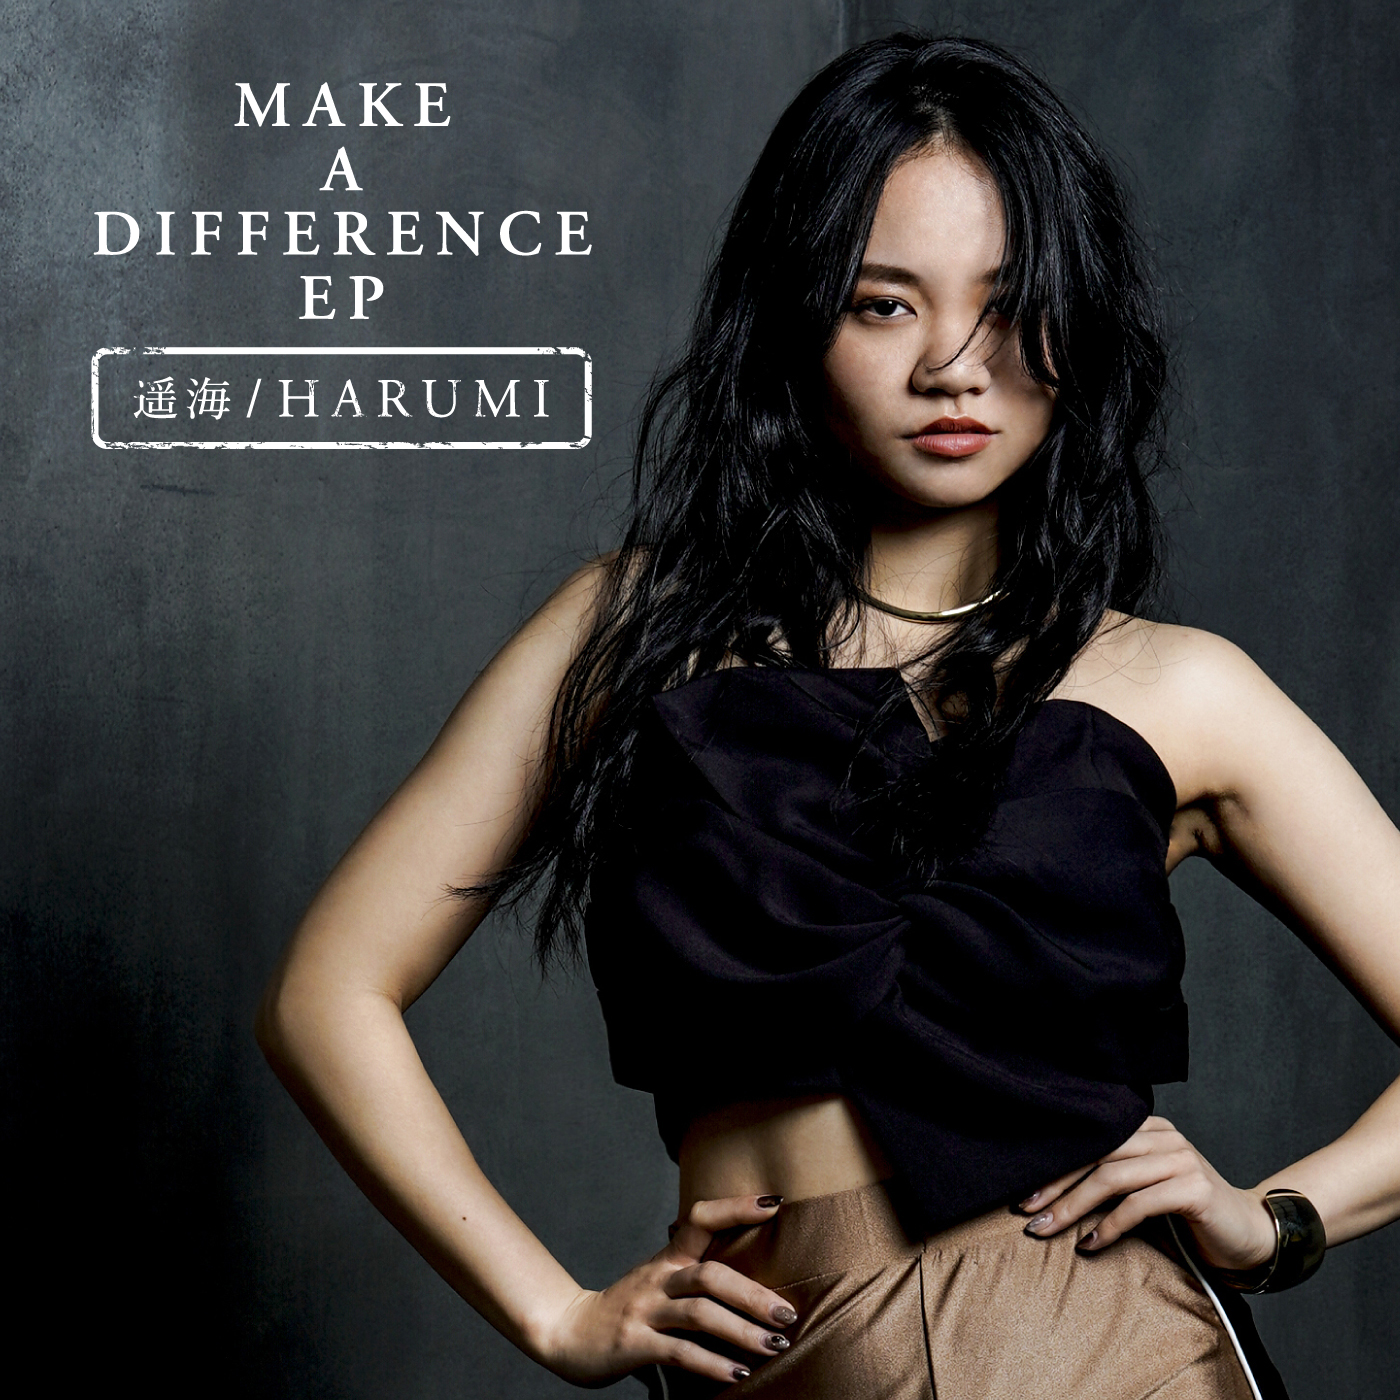 「MAKE A DIFFERENCE EP」